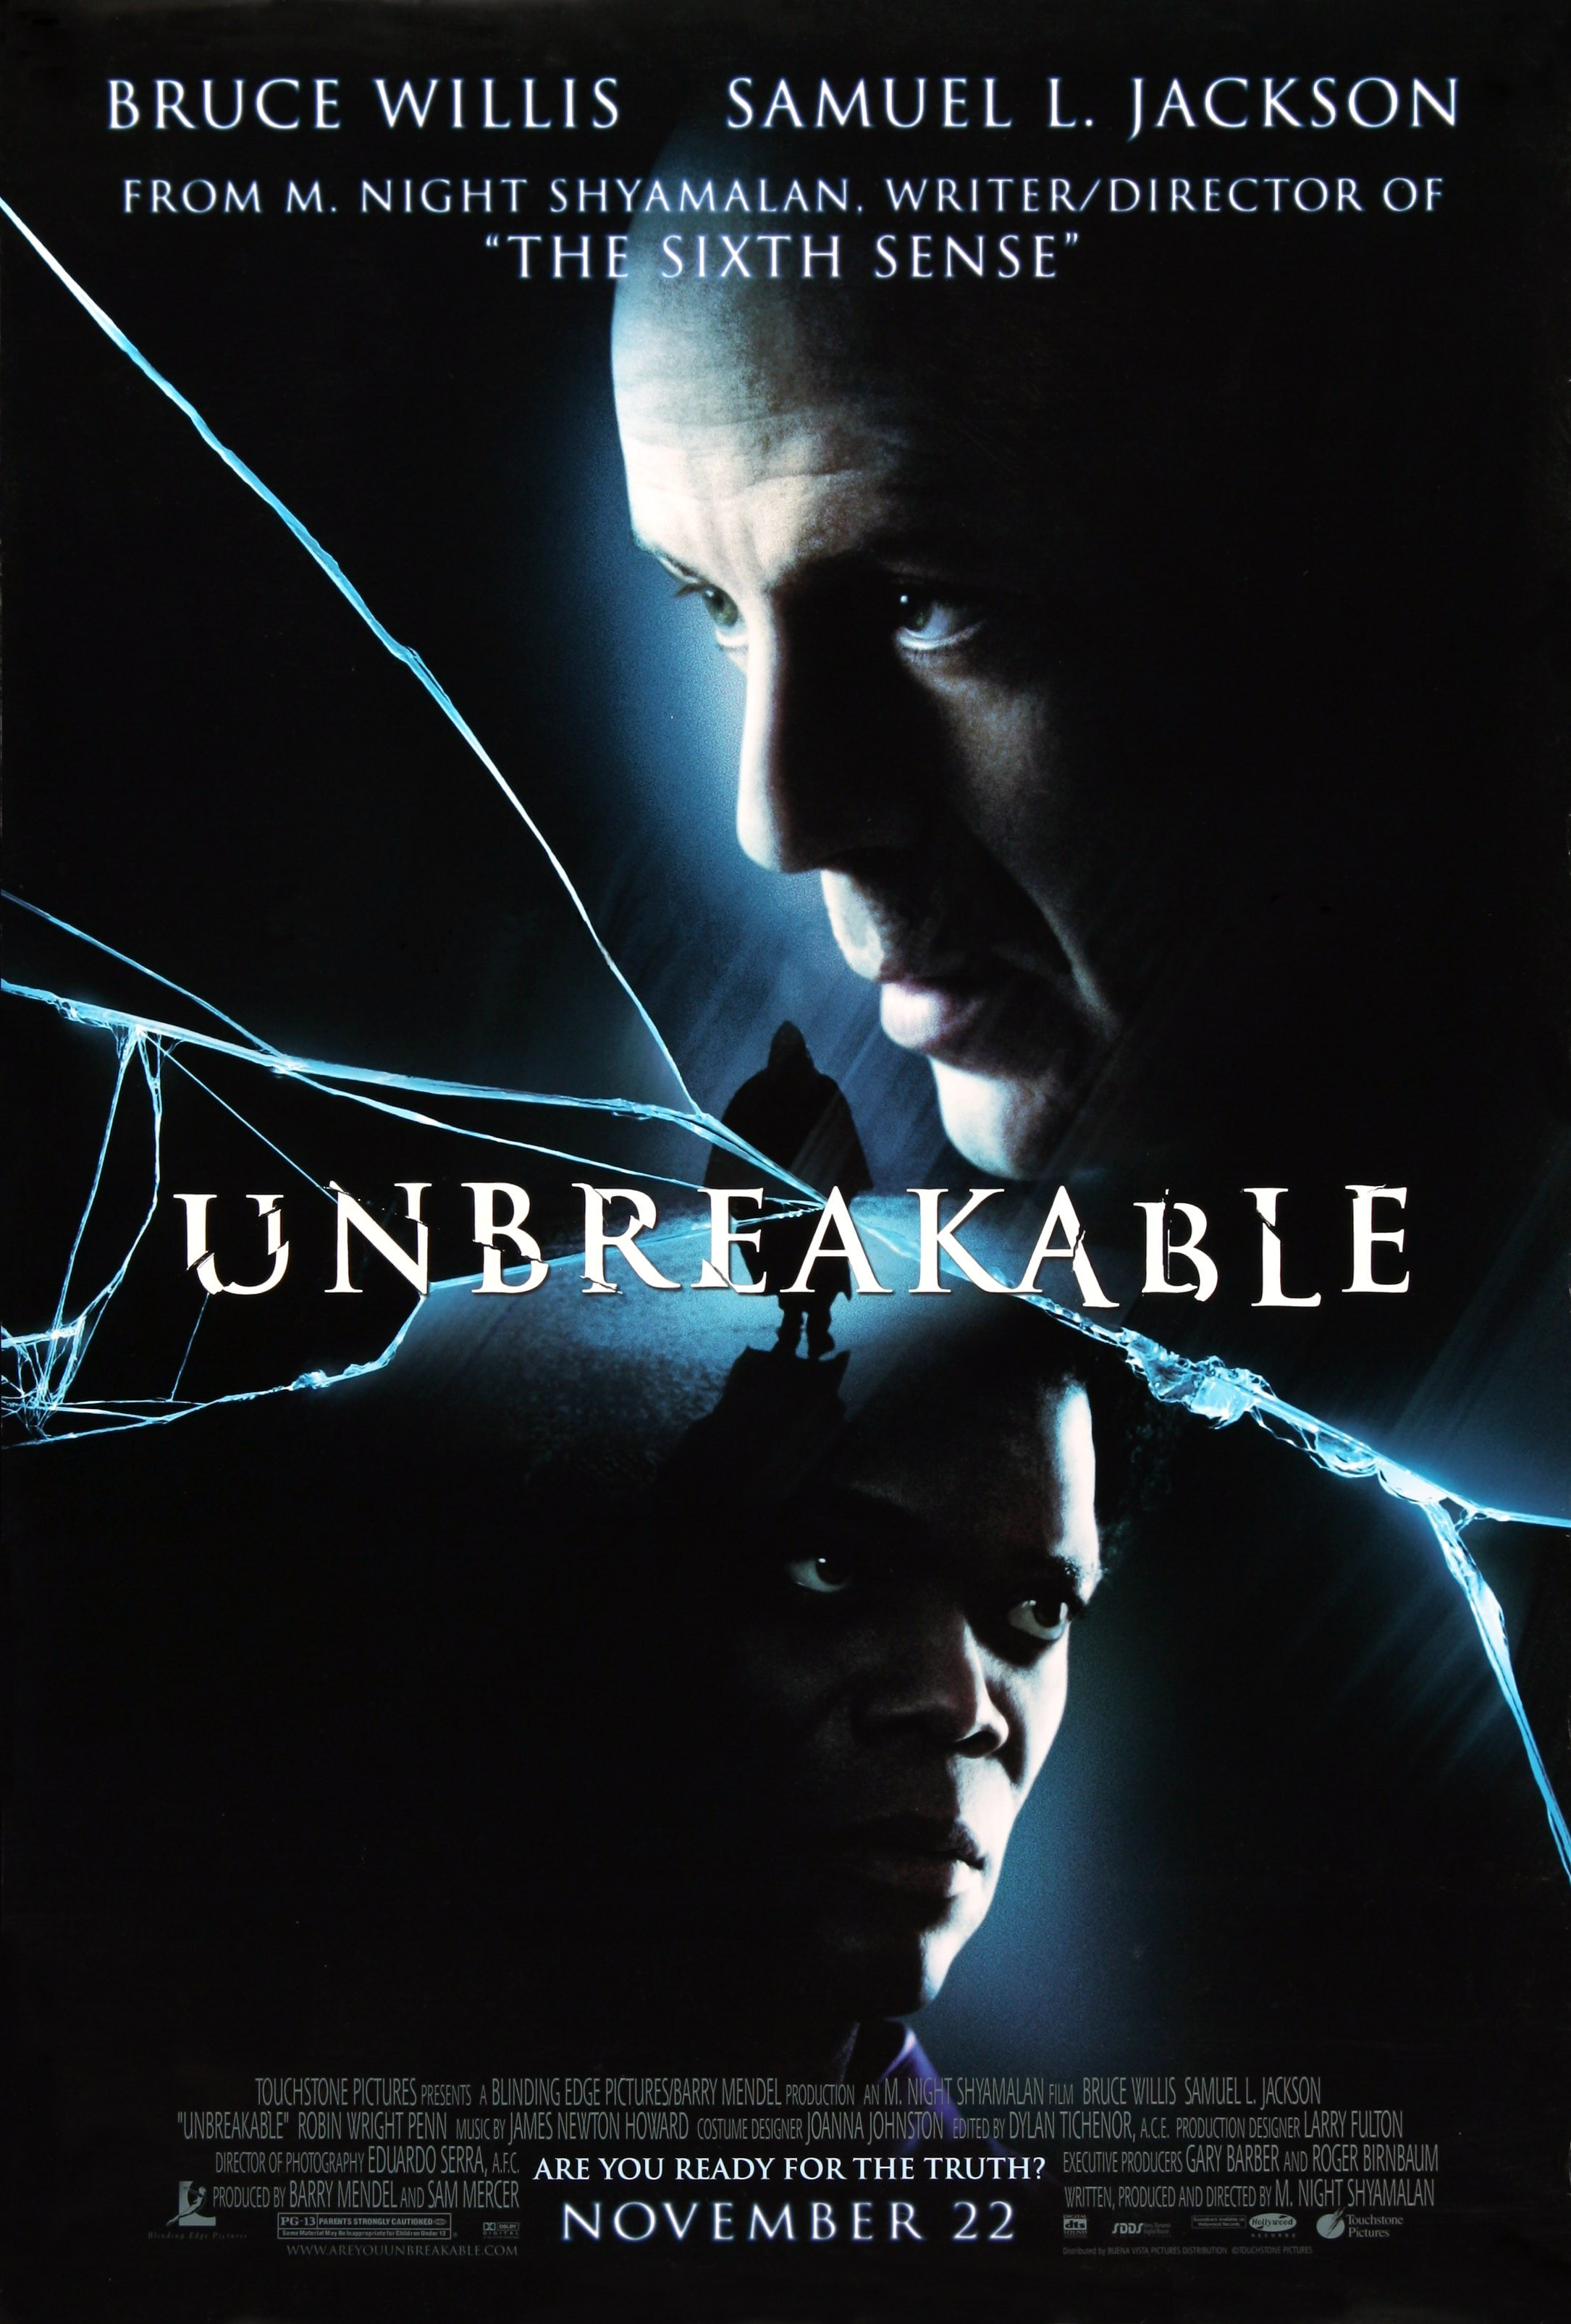 Image result for unbreakable movie poster